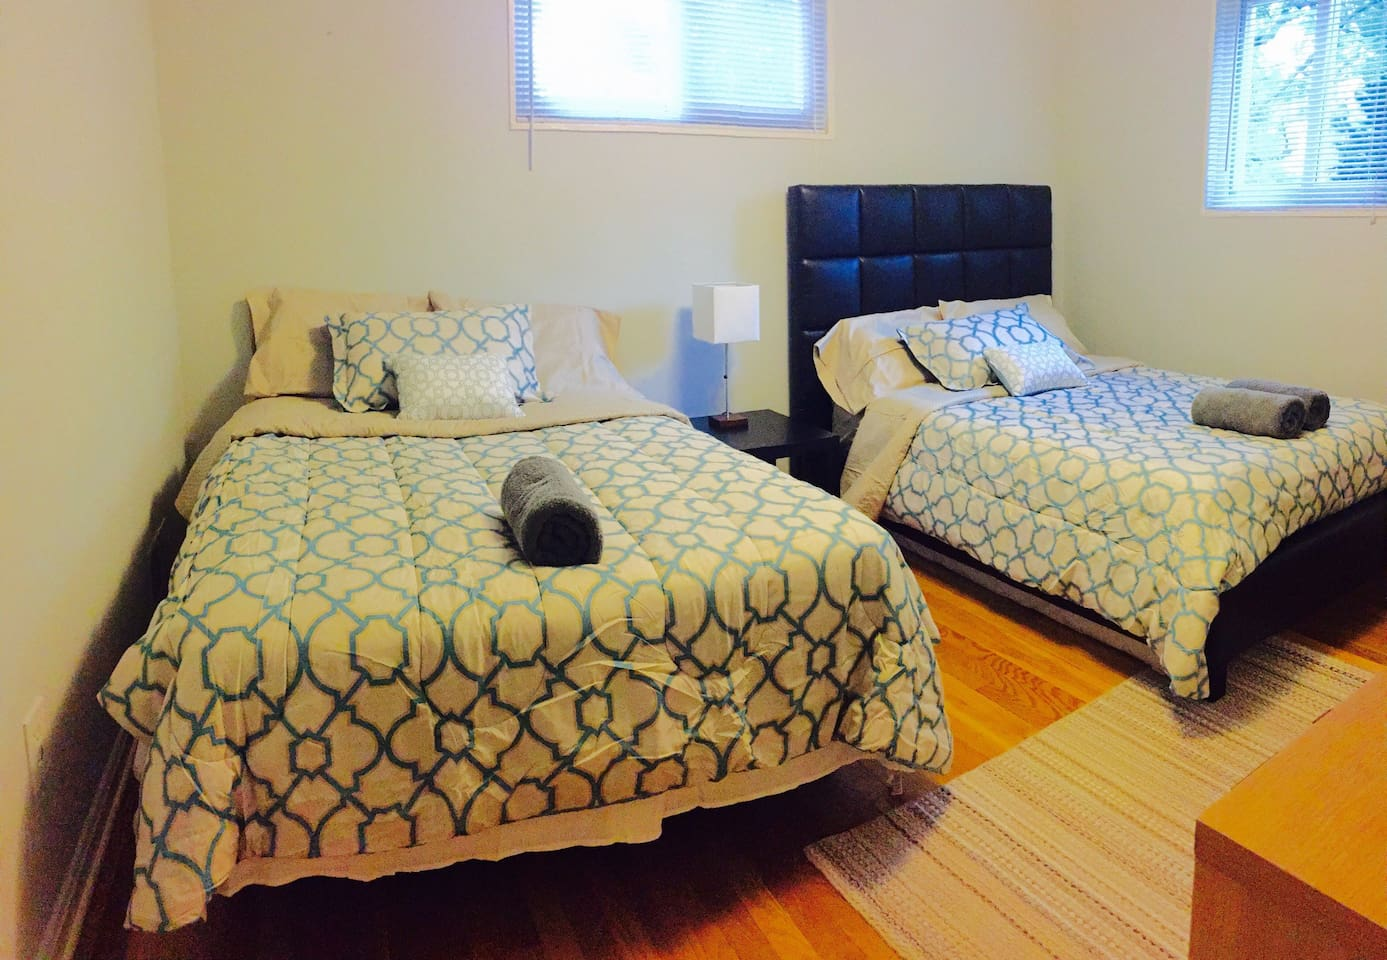 2 comfortable full beds, fresh sheets and towels,sunny and large room